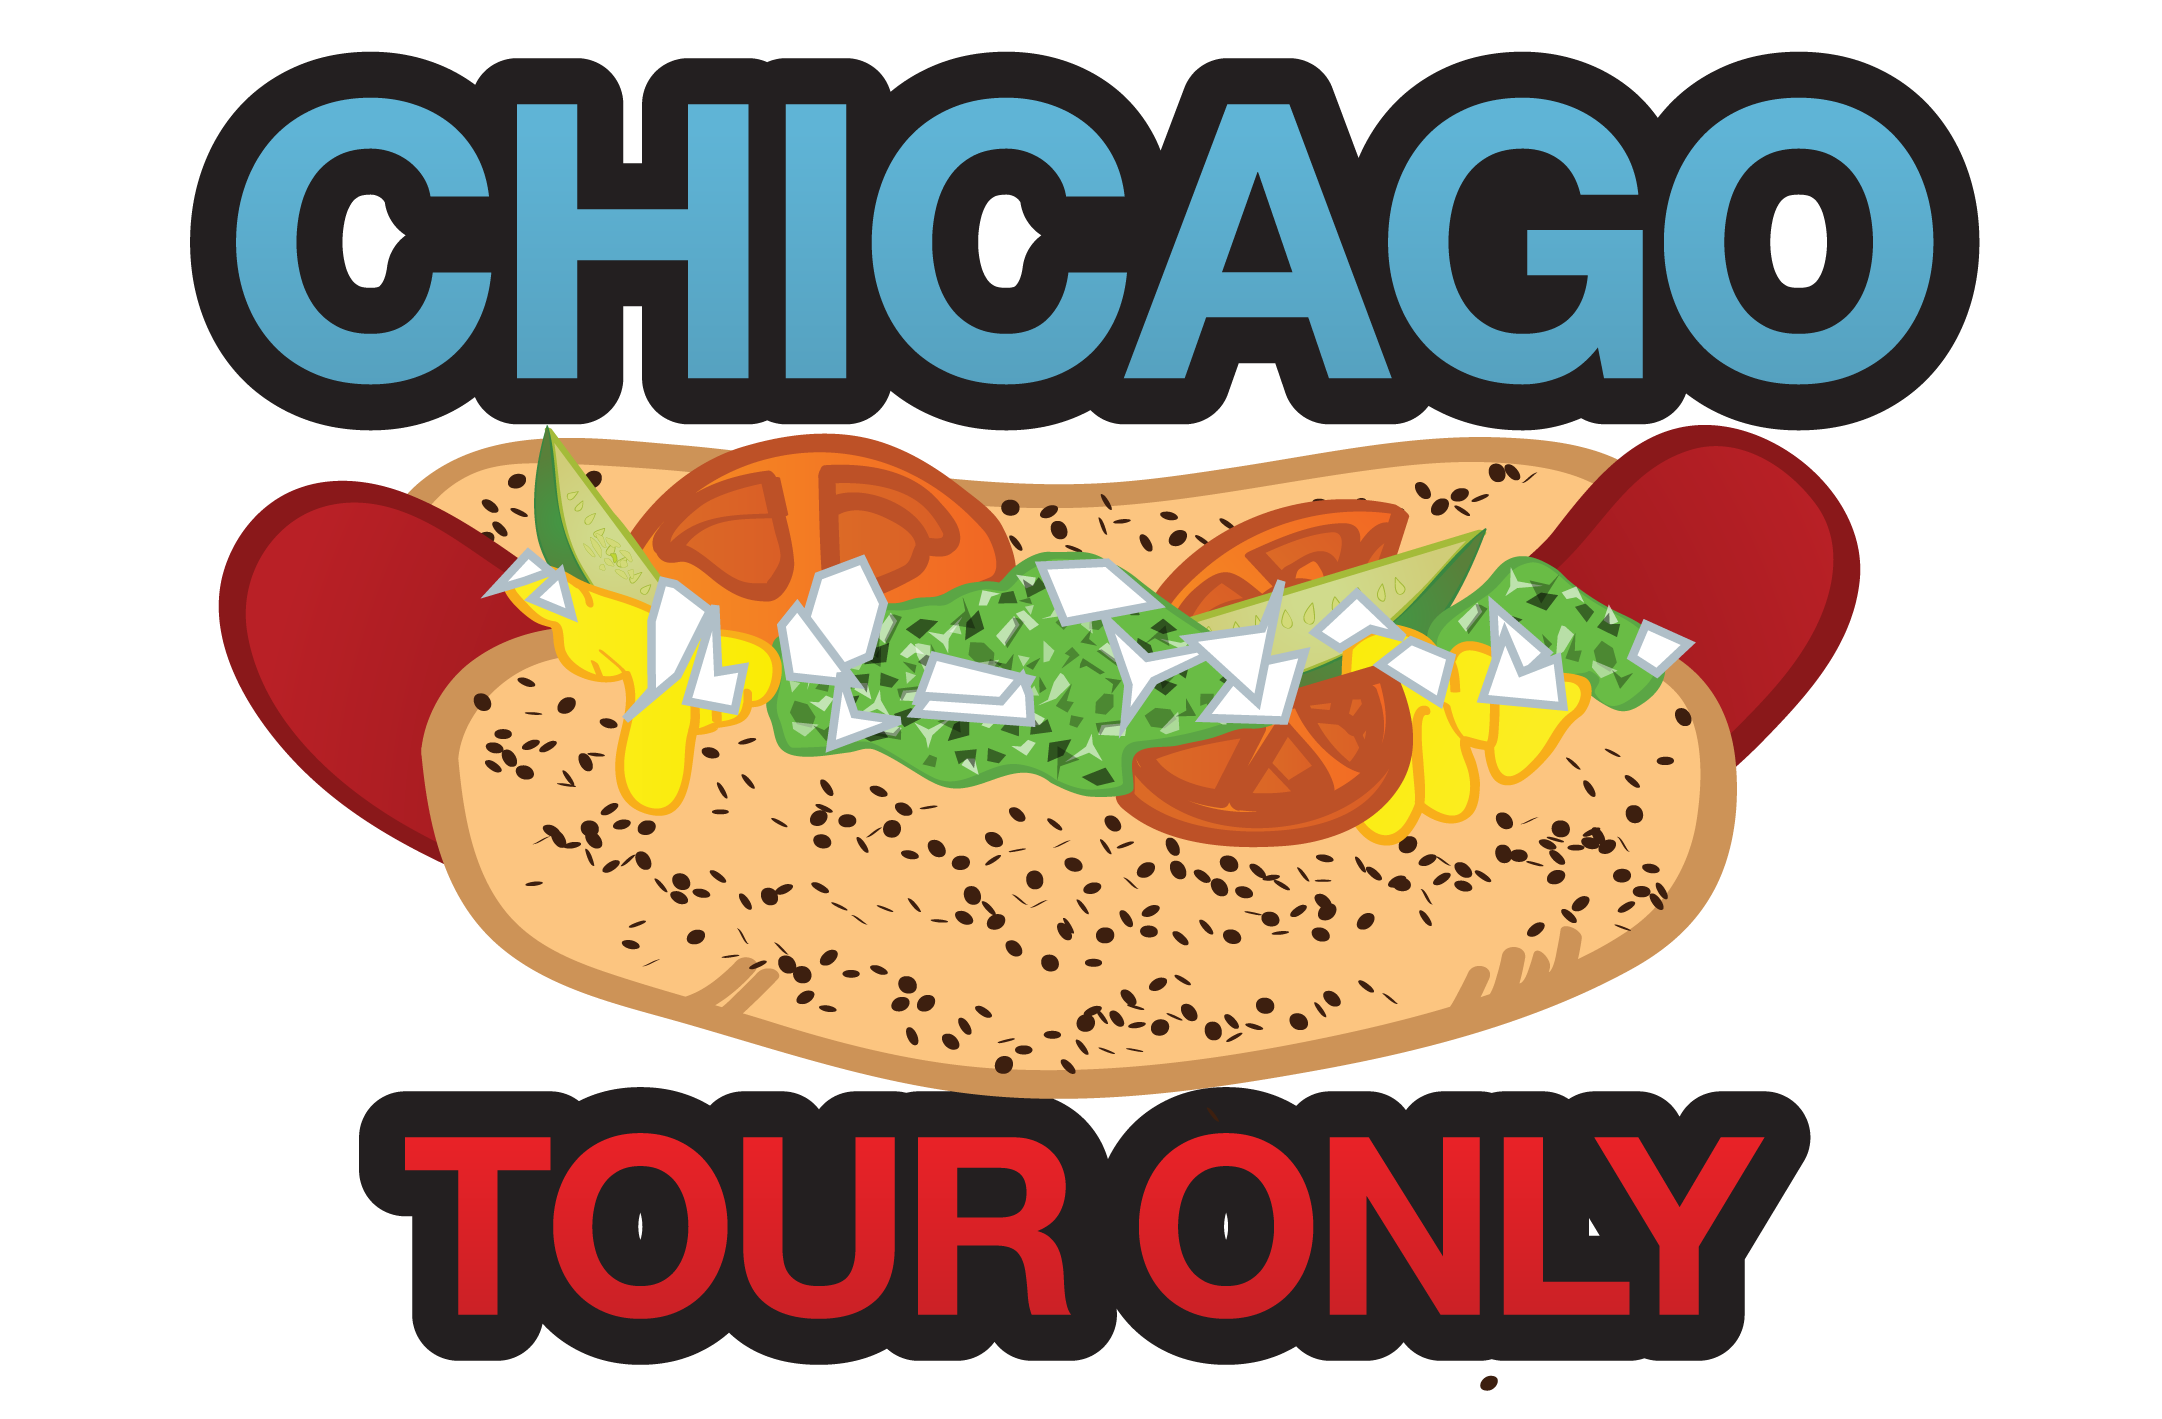 Golf Tournament Chicago Chicago Tour Only